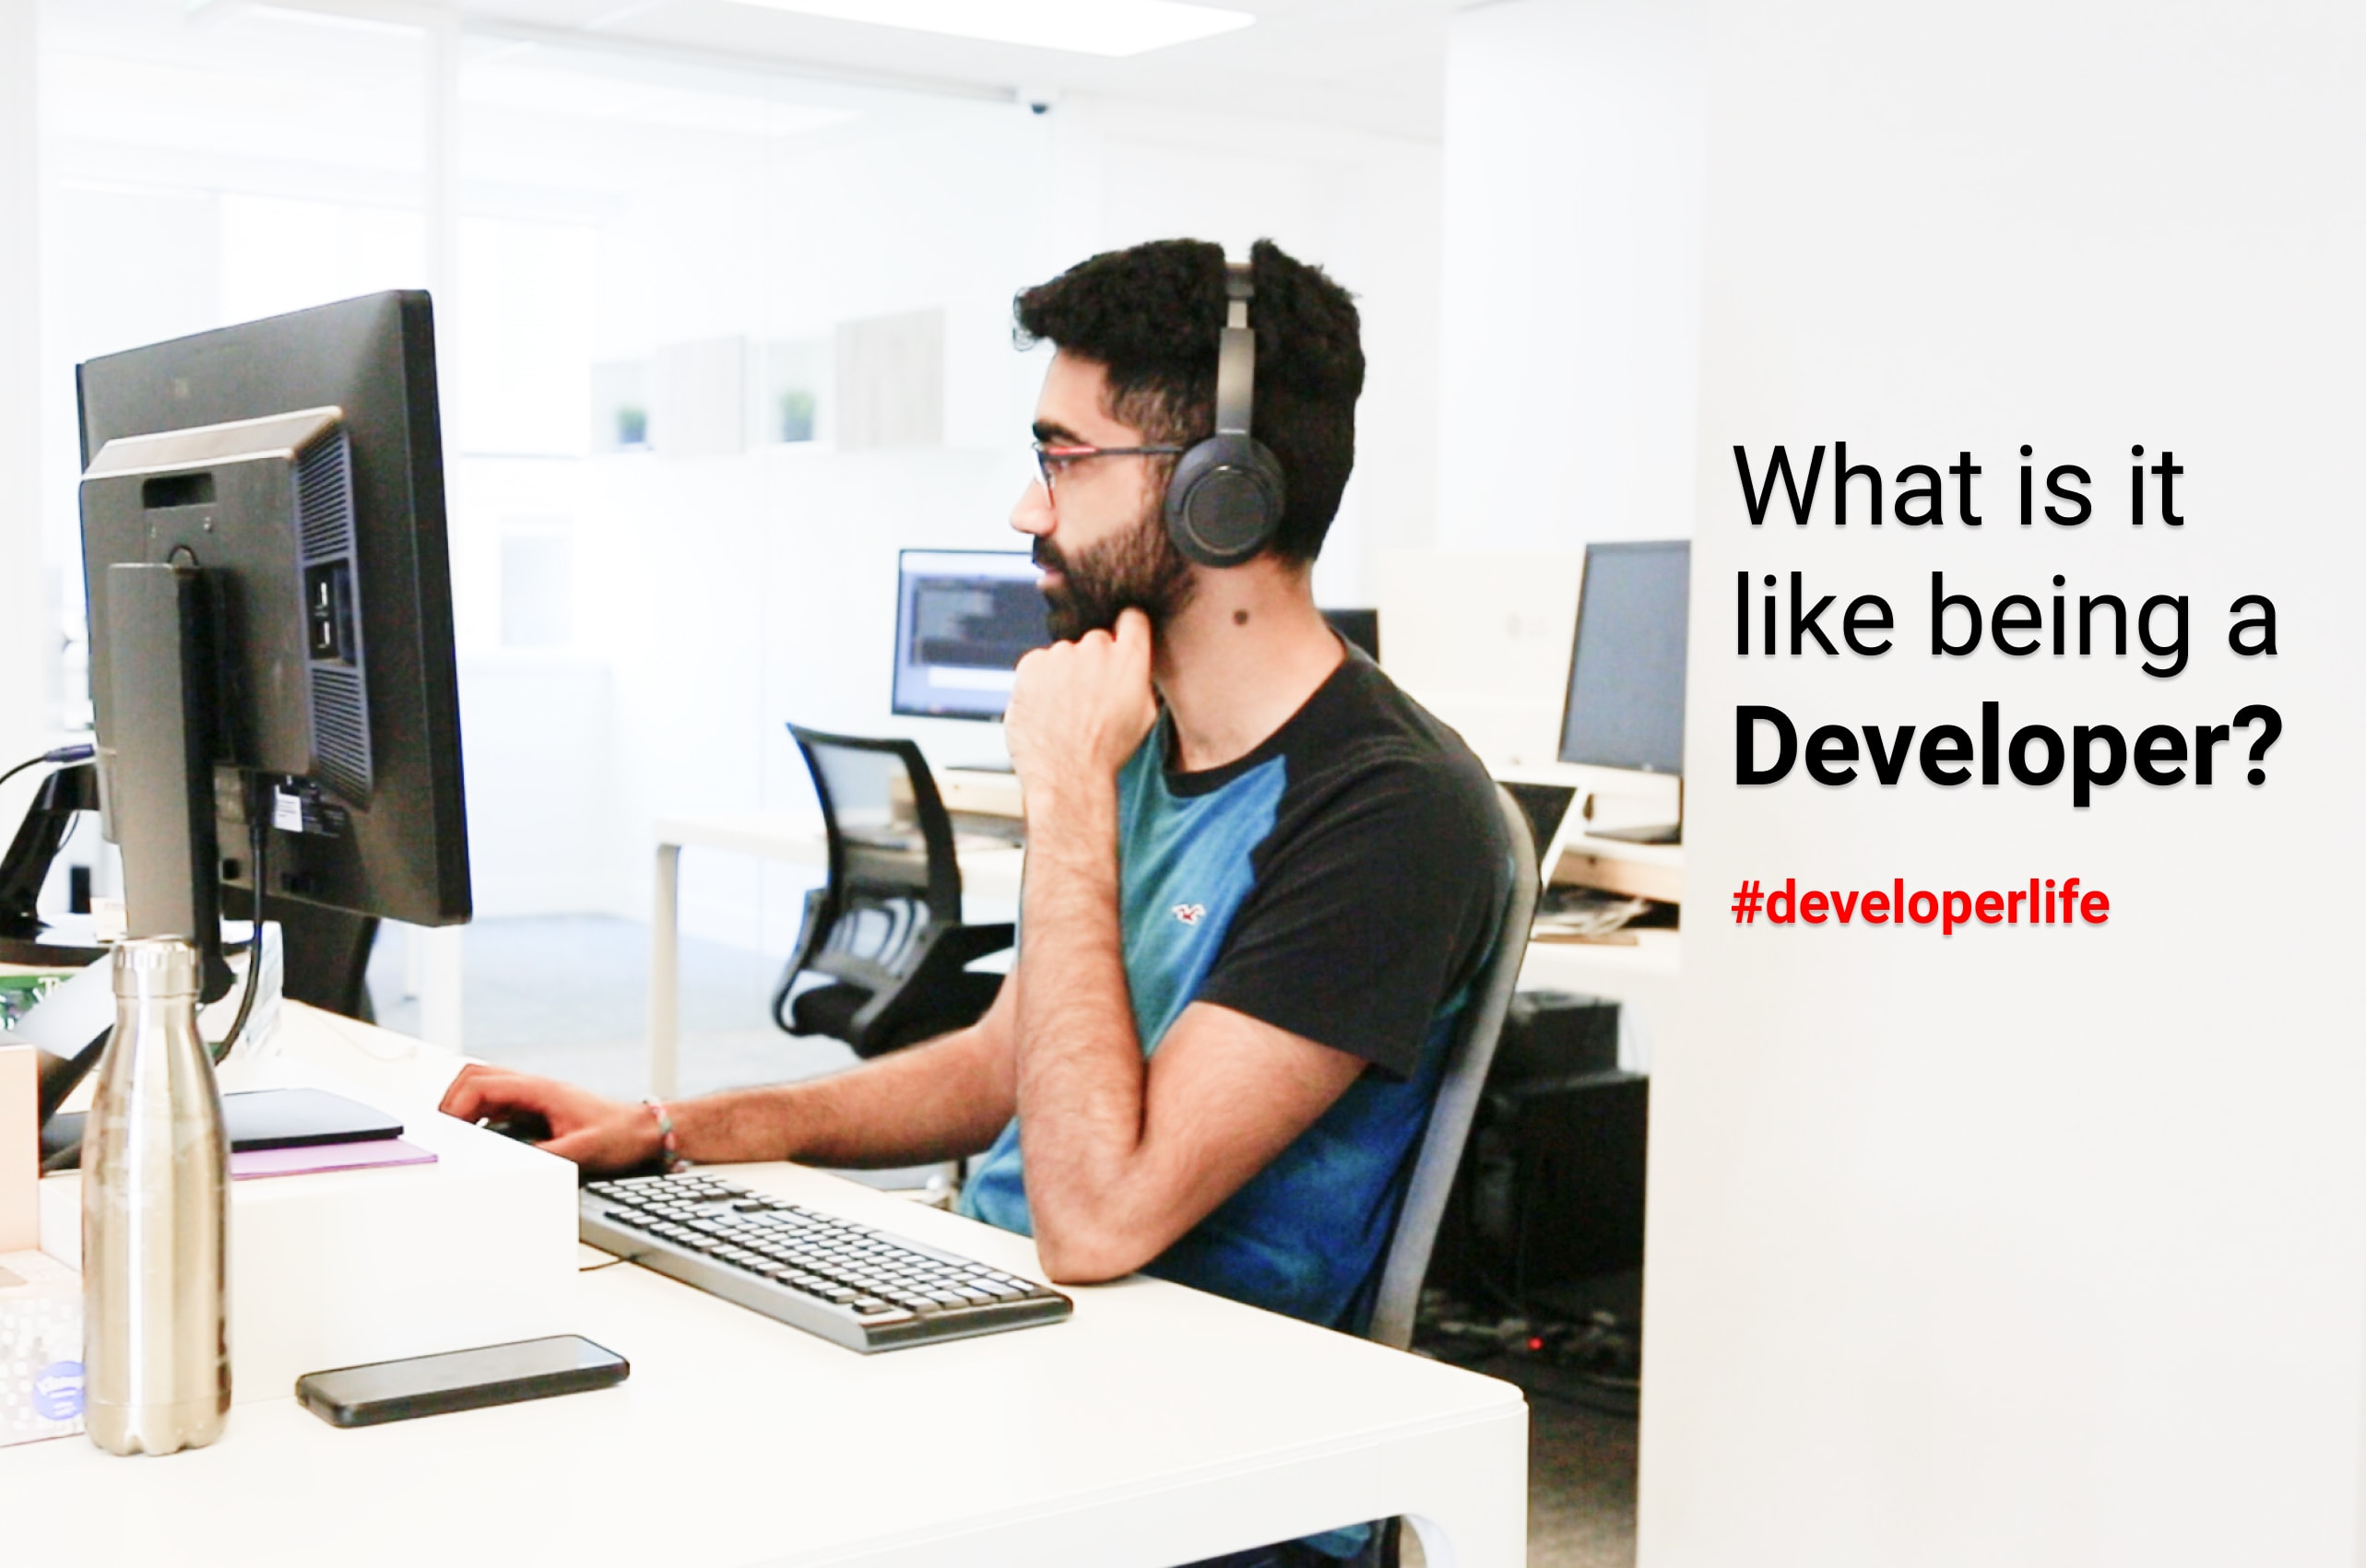 What is it like being a developer?